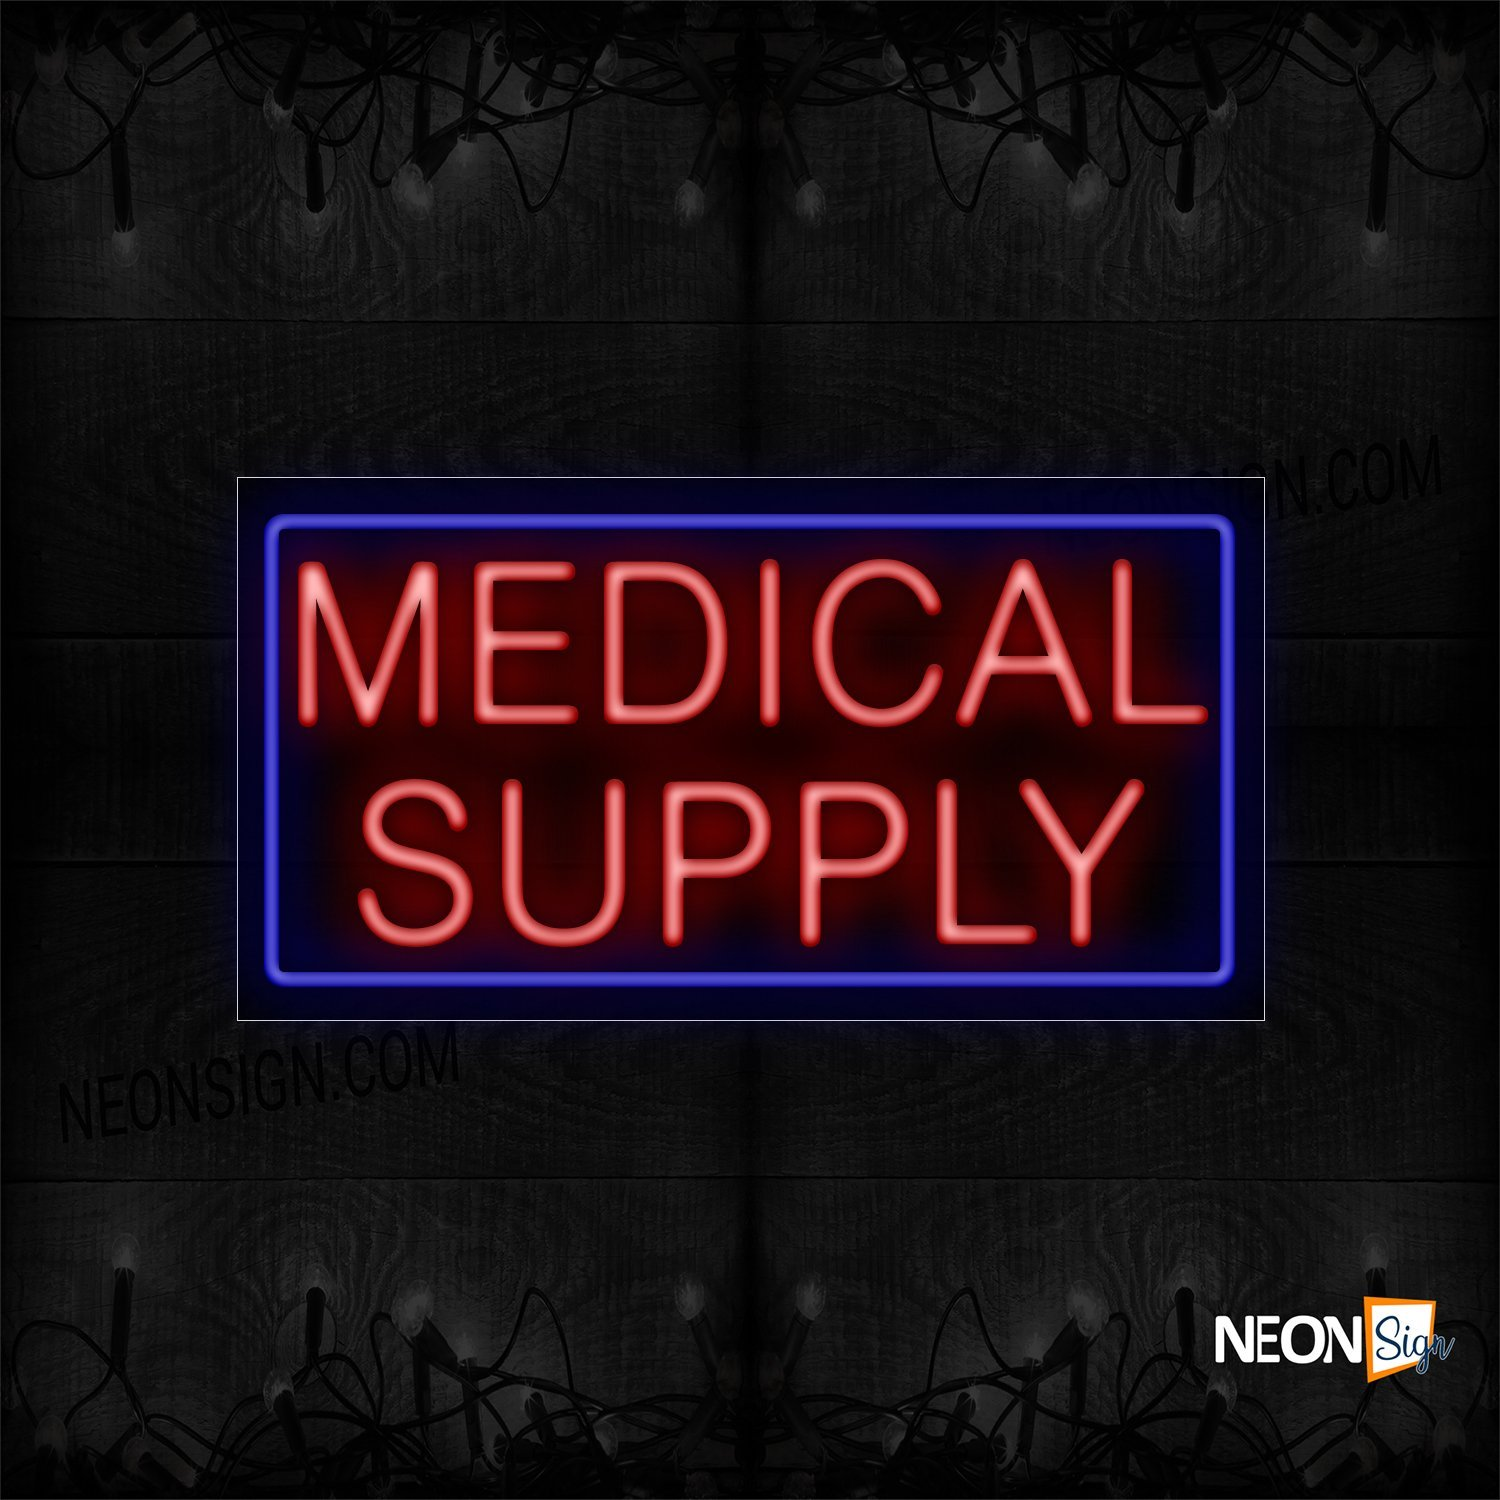 Image of 11747 Medical Supply In Red With Blue Border Neon Sign_20x37 Black Backing